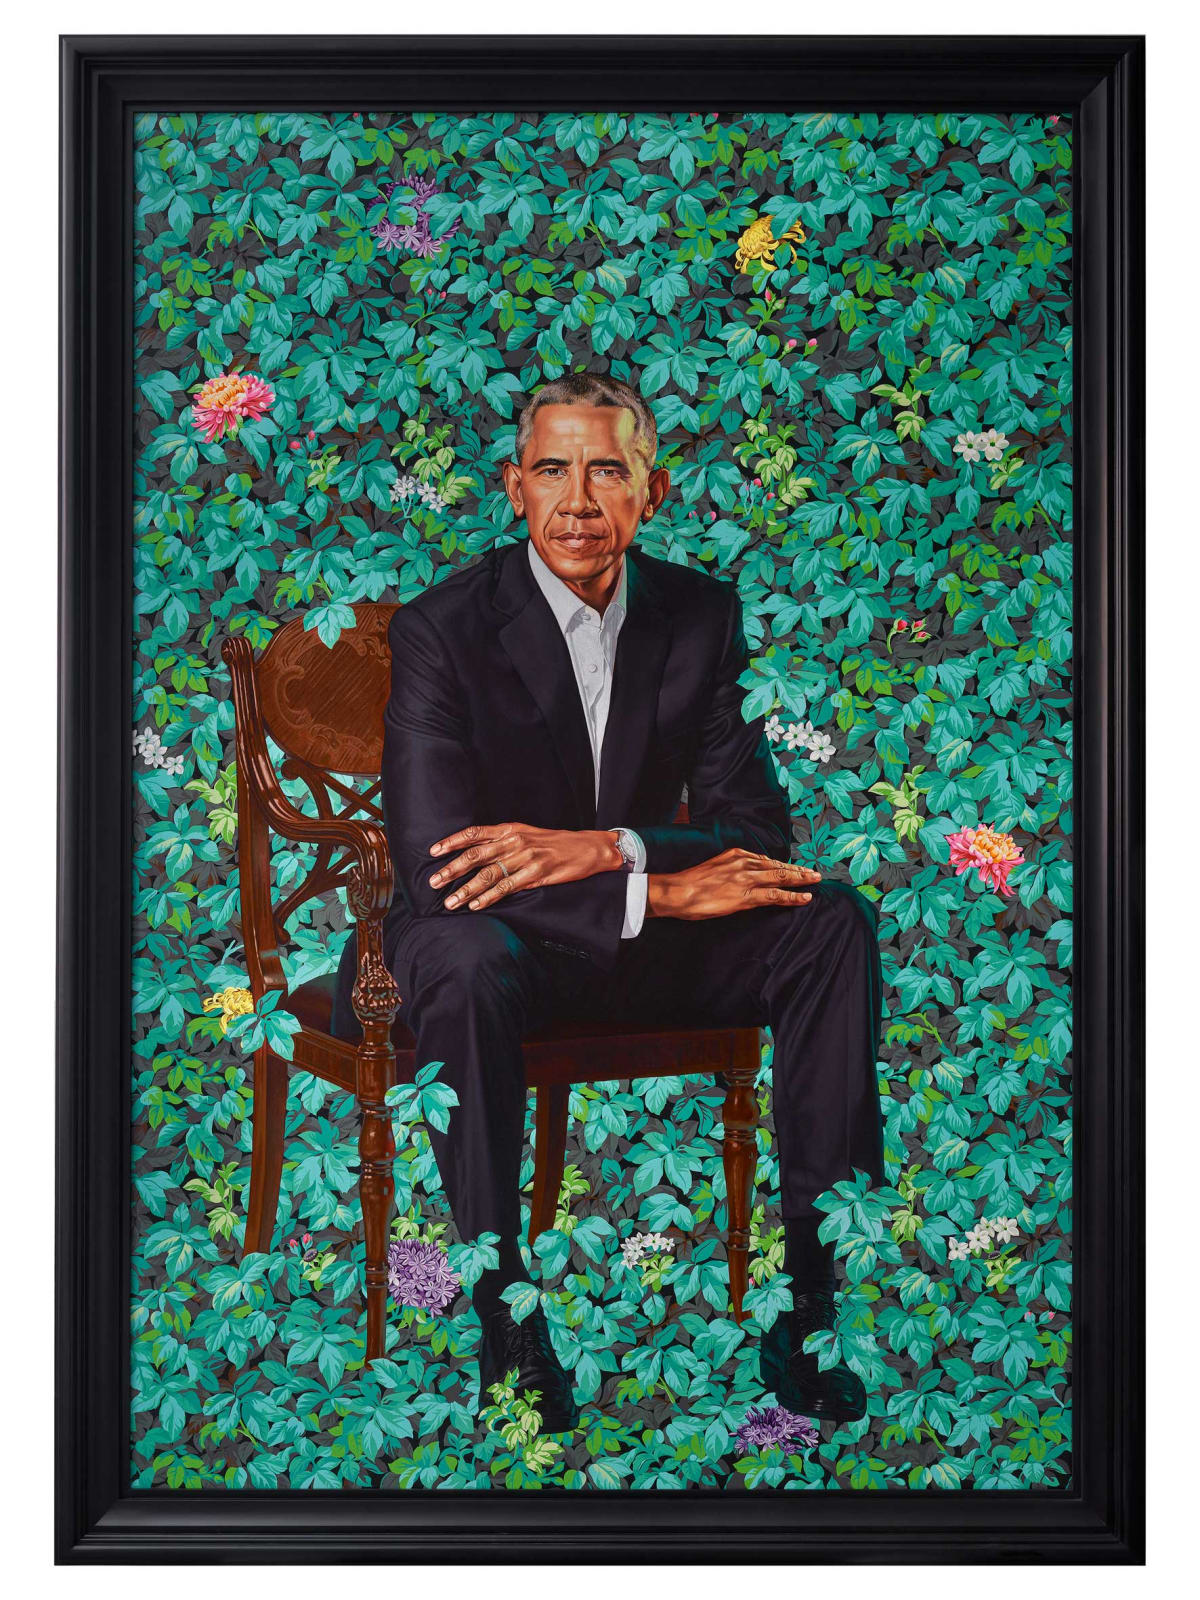 <p>Kehinde Wiley, 'Portrait of Barack Obama', 2018, Collection of the National Portrait Gallery, Washington DC</p>